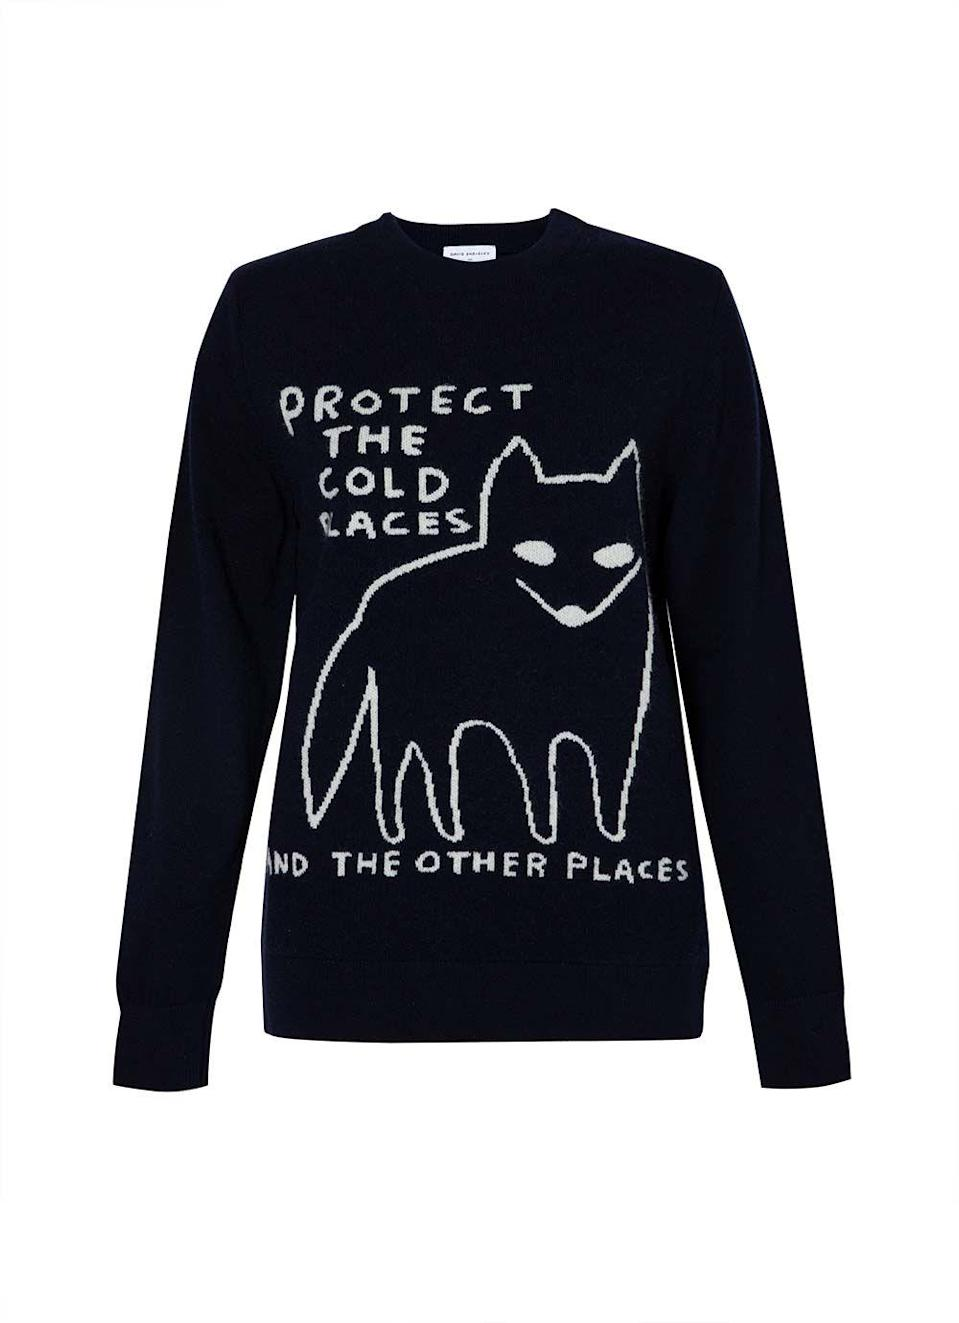 """<p>David Shrigley, the artist loved for his witty illustrations, has produced a series of characterful alternatives to the classic Christmas knit.</p><p>Collaborating with Sunspel, the British artist has applied his signature style to a range of products including lambswool jumpers, sweatshirts, underwear and scarves.</p><p>For each product sold, 10% will be donated to Stump Up For Trees, an environmental charity working towards planting a million trees in the Brecon Beacons, South Wales.</p><p>Lambswool jumper, £235, sunspel.com.</p><p><a class=""""link rapid-noclick-resp"""" href=""""https://www.sunspel.com/uk/womens/david-shrigley-and-sunspel.html"""" rel=""""nofollow noopener"""" target=""""_blank"""" data-ylk=""""slk:SUPPORT NOW"""">SUPPORT NOW</a></p>"""